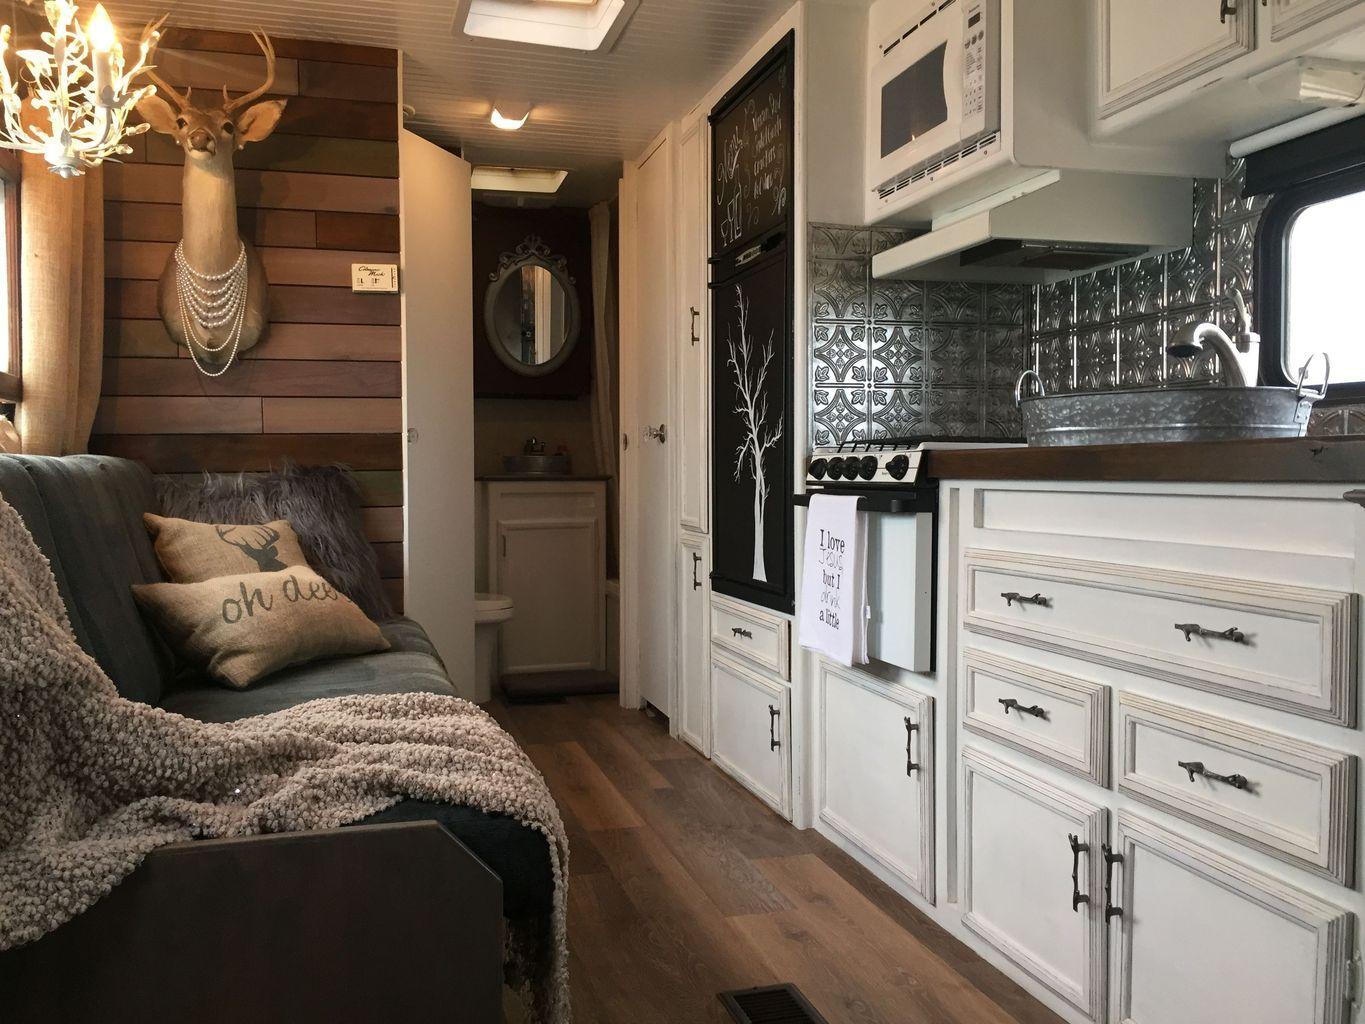 50 Camper Remodel Ideas For Renovating RV Travel Trailers